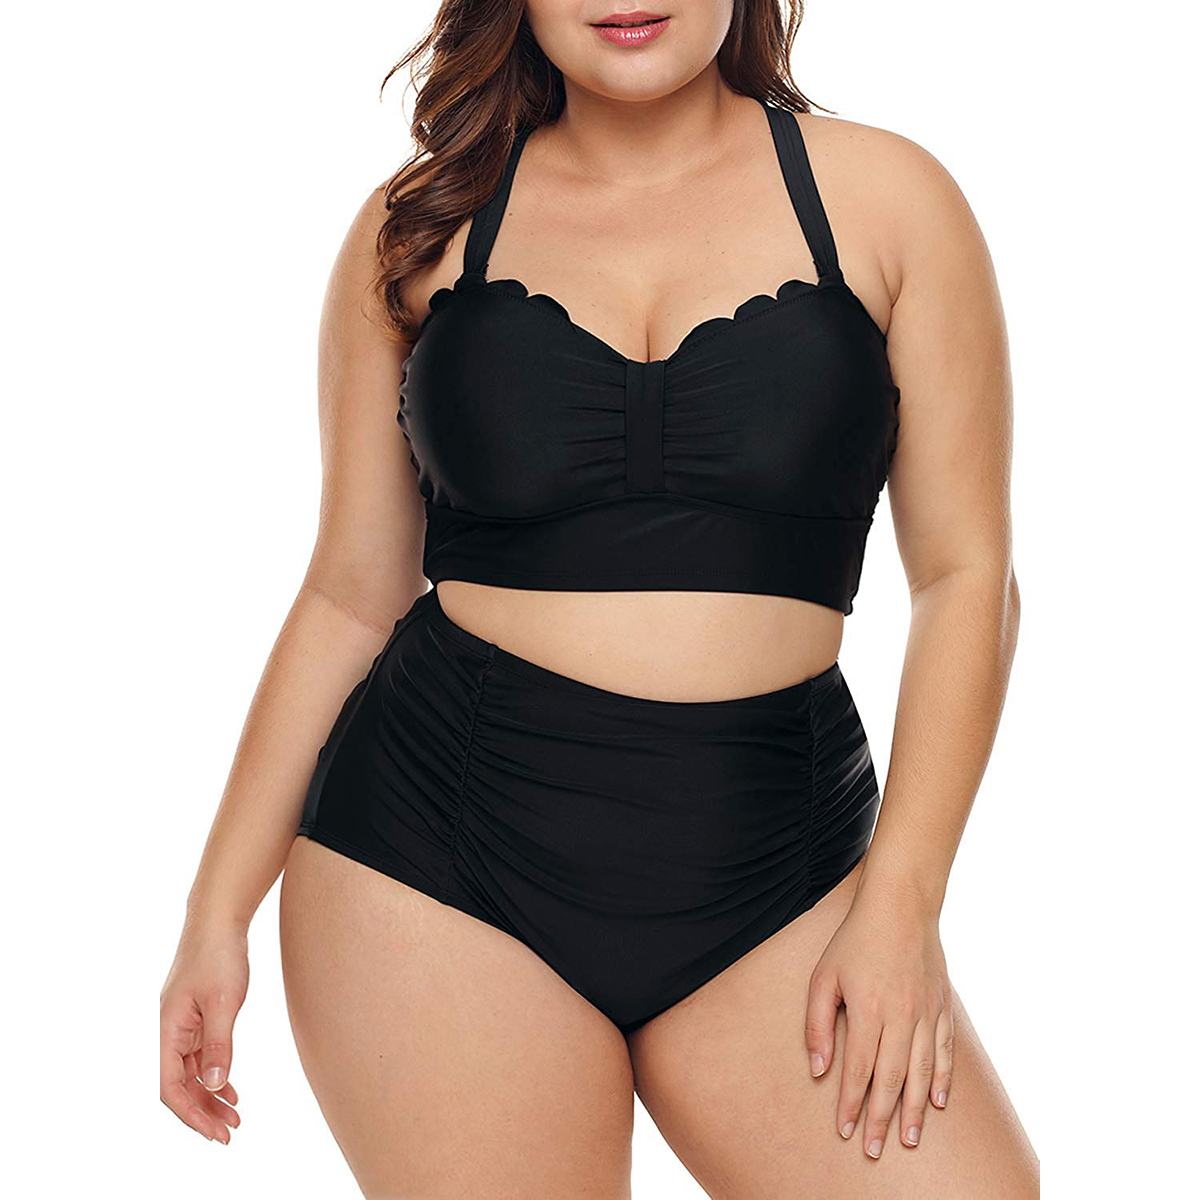 Plus Swimsuits 2019 For The Size Best Curves uZXiTPOk